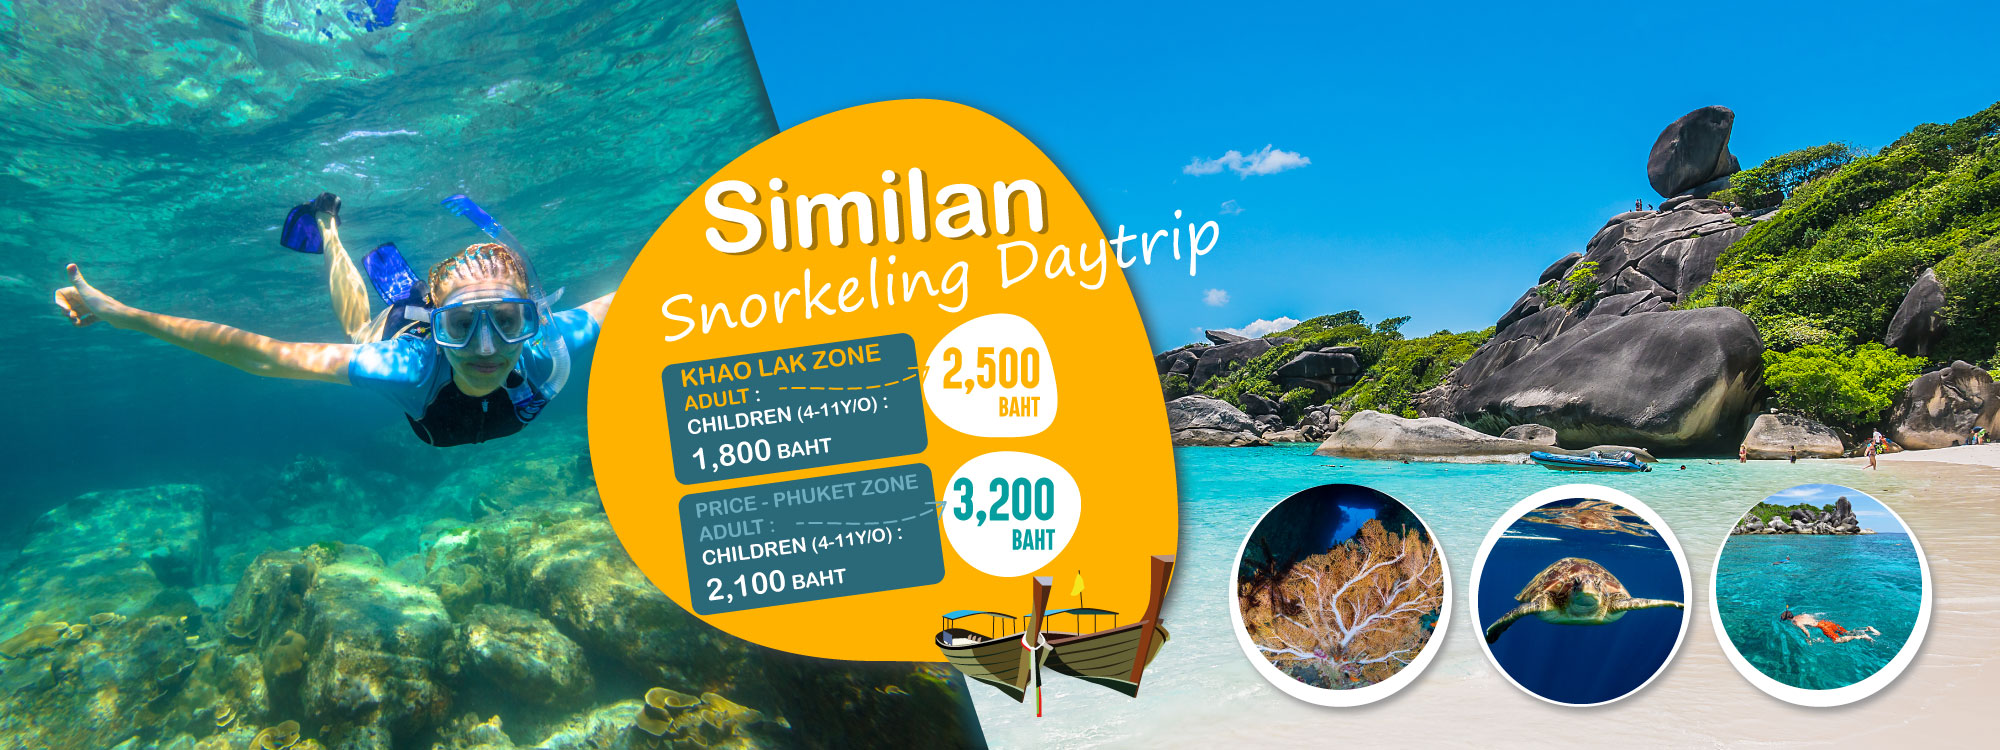 Similan Snorkeling Tour Packages